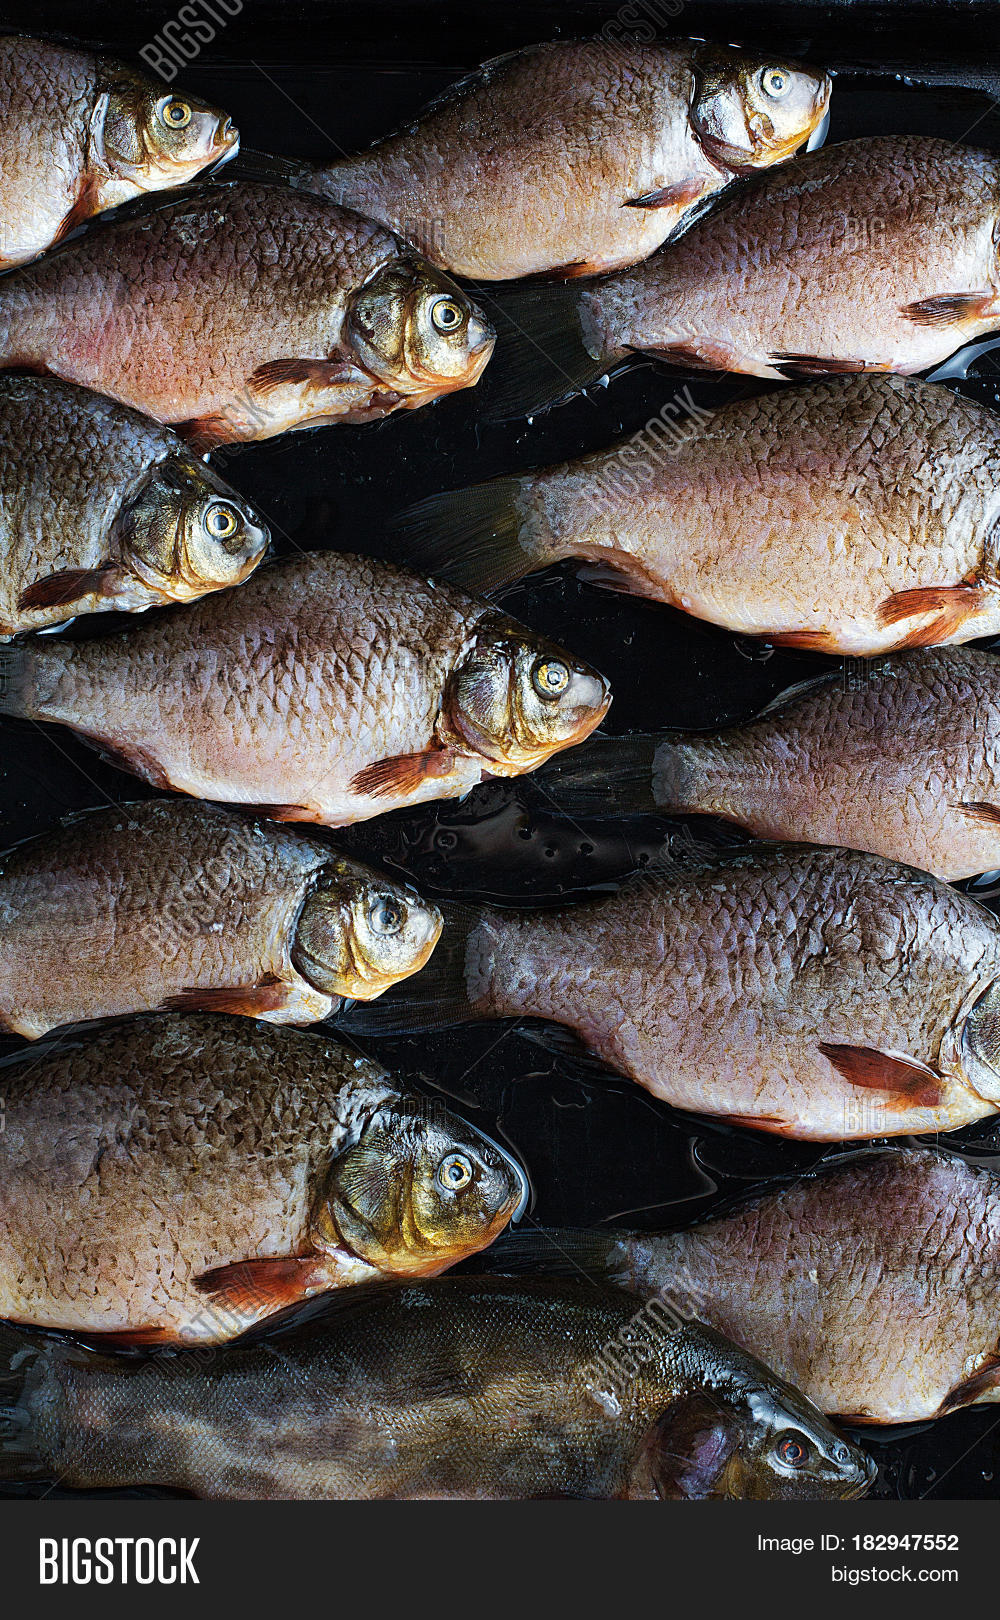 Lots of fresh river fish on a tray stock photo stock for Lots of fish